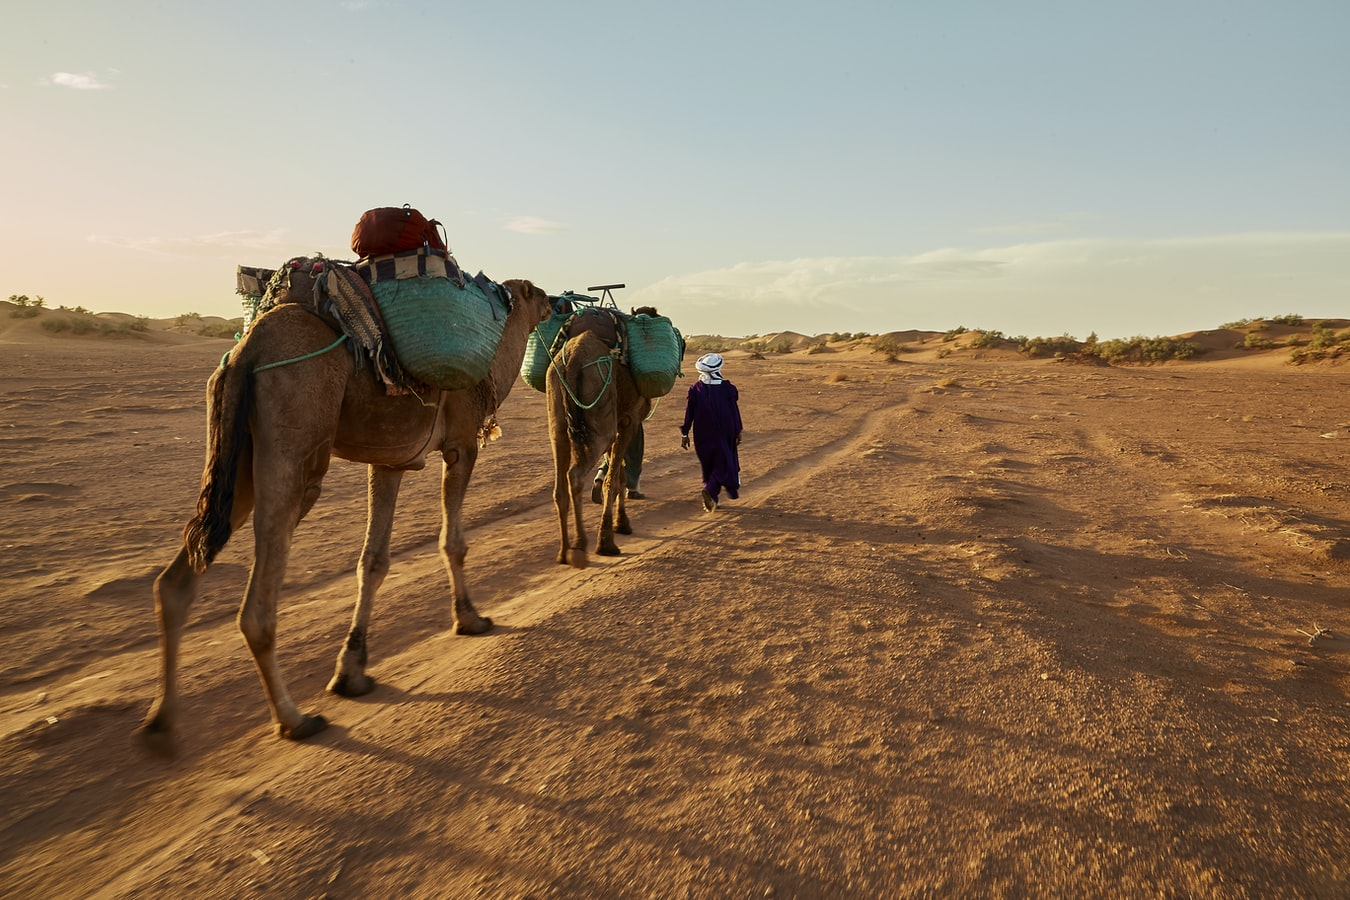 Much more than a desert: A trip into the Sahara